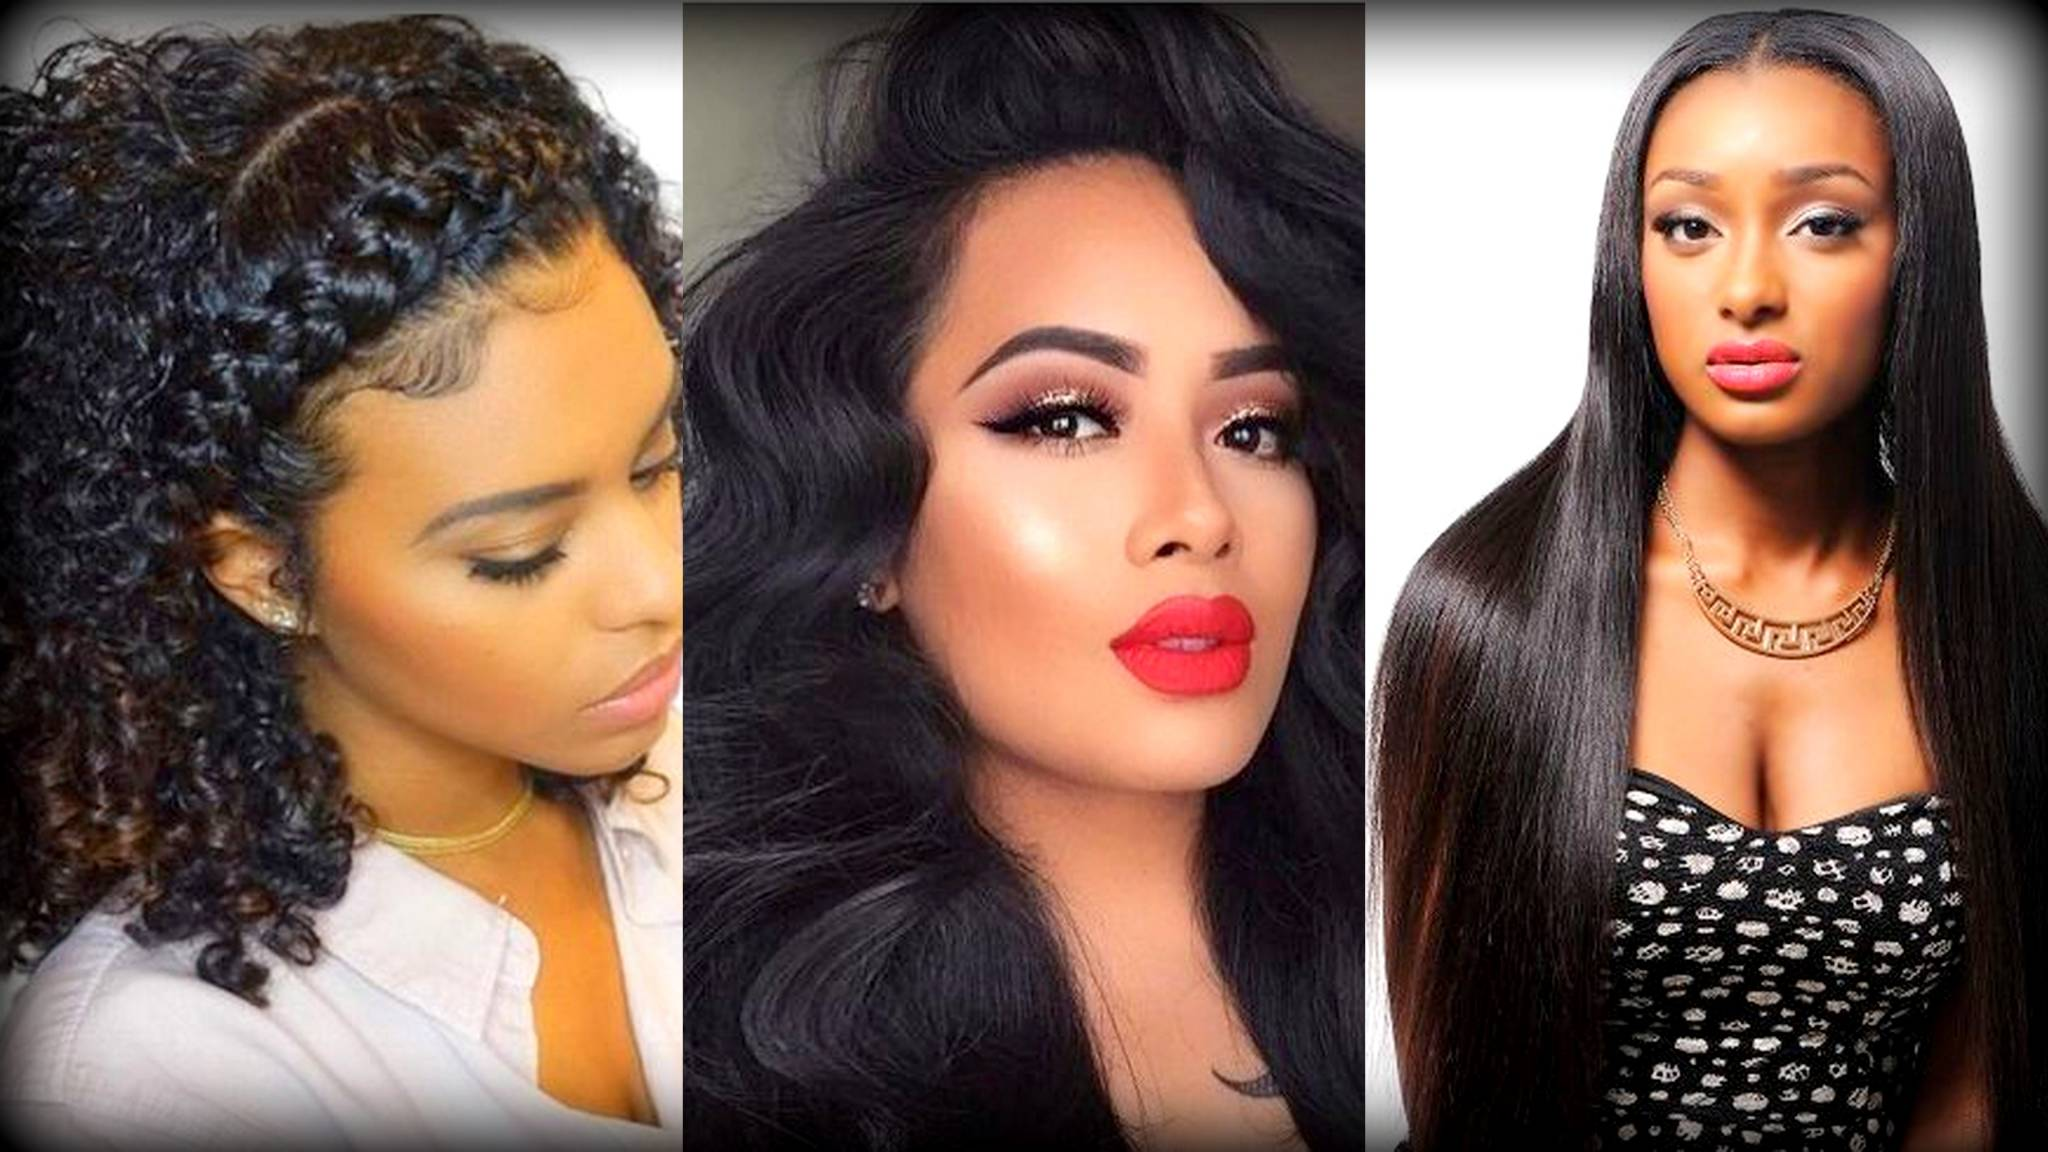 besthairbuy, wigs, 360 lace wigs, hair extensions, wigs style, wigs in fashion, human hair wigs, colossal closet